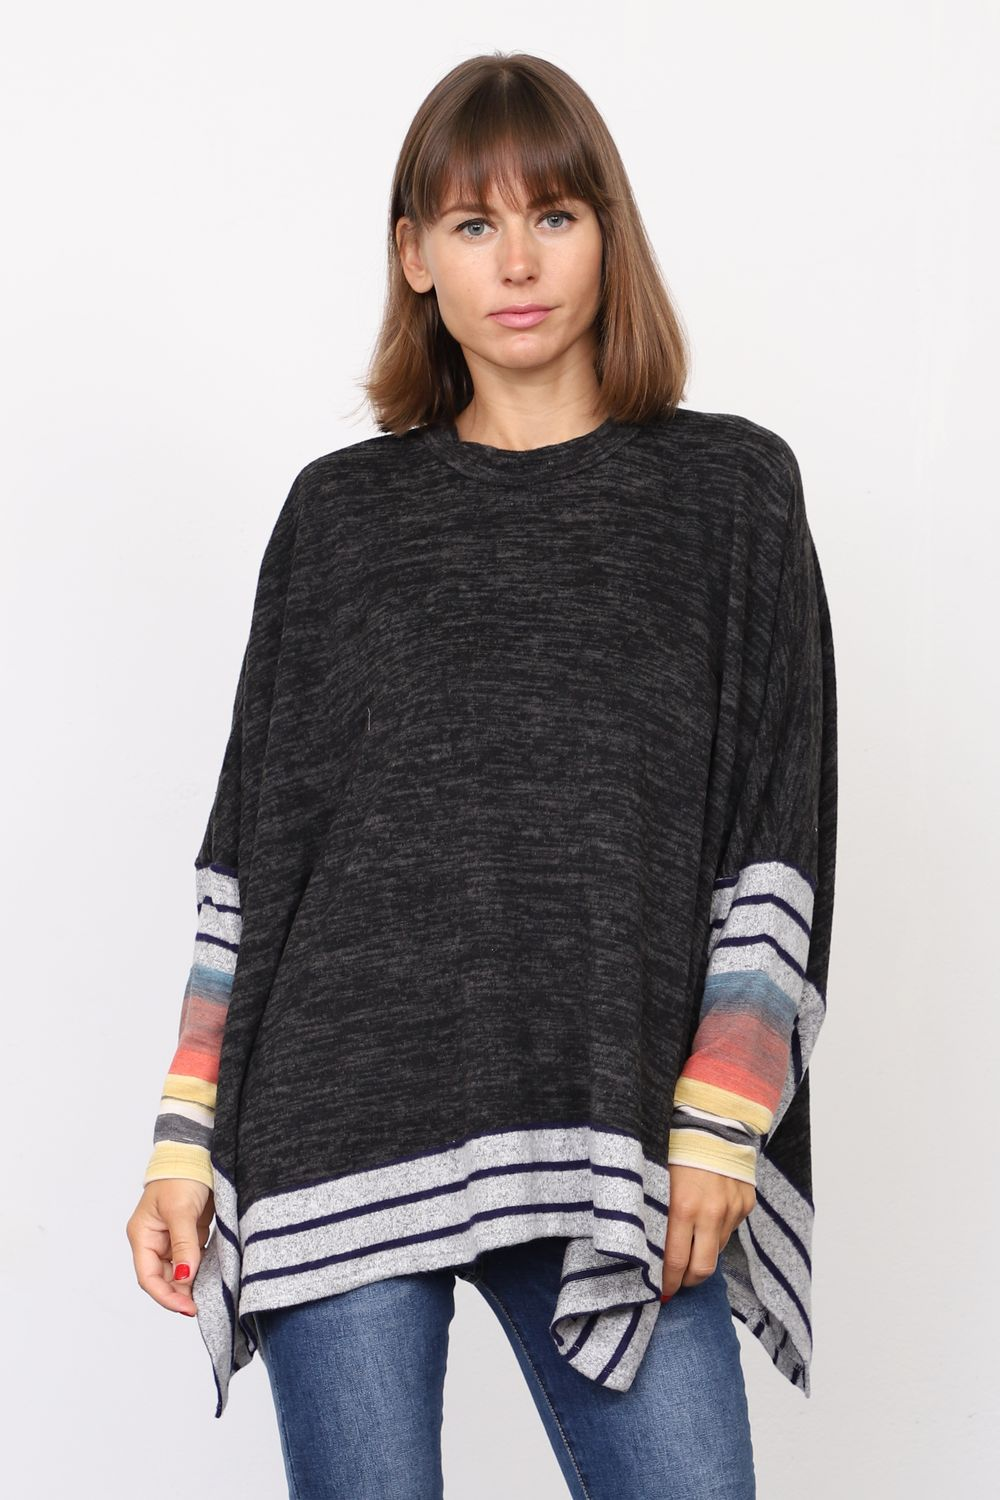 Black Brushed Soft Cape Style Poncho Tunic with Stripe Trim Water Color Accent